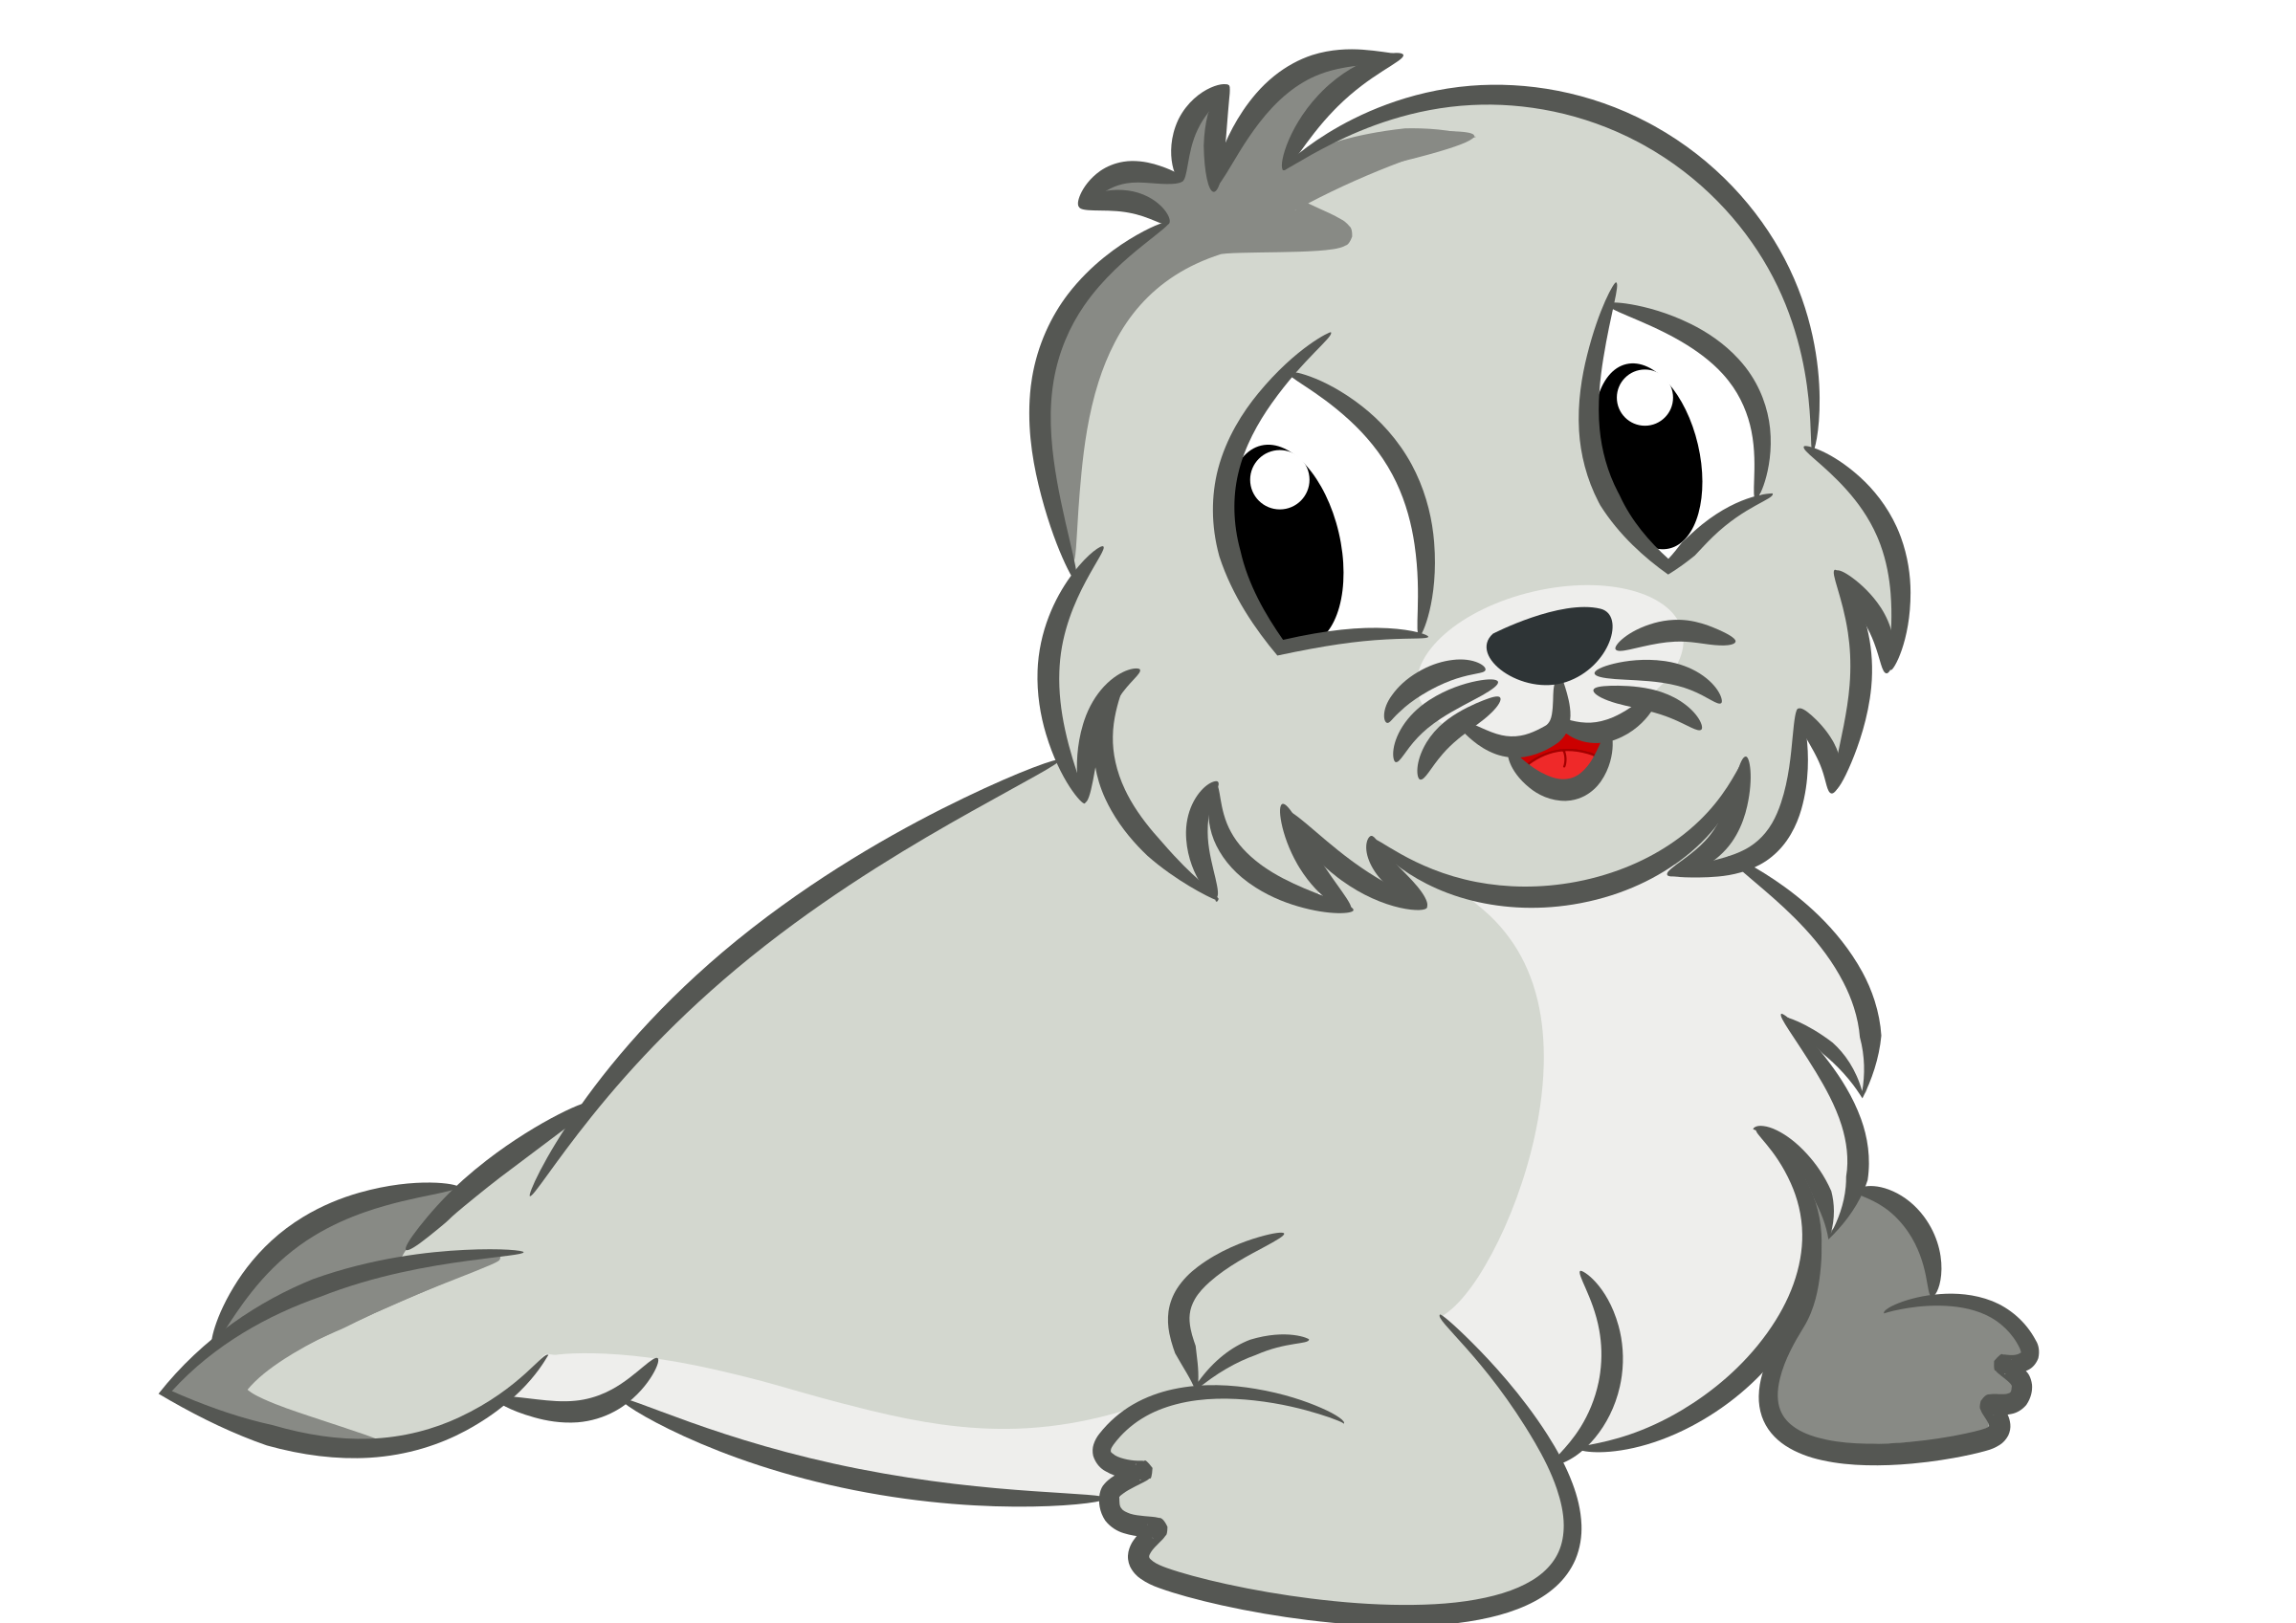 Cute Baby Seal Drawing vector clipart image - Free stock ...